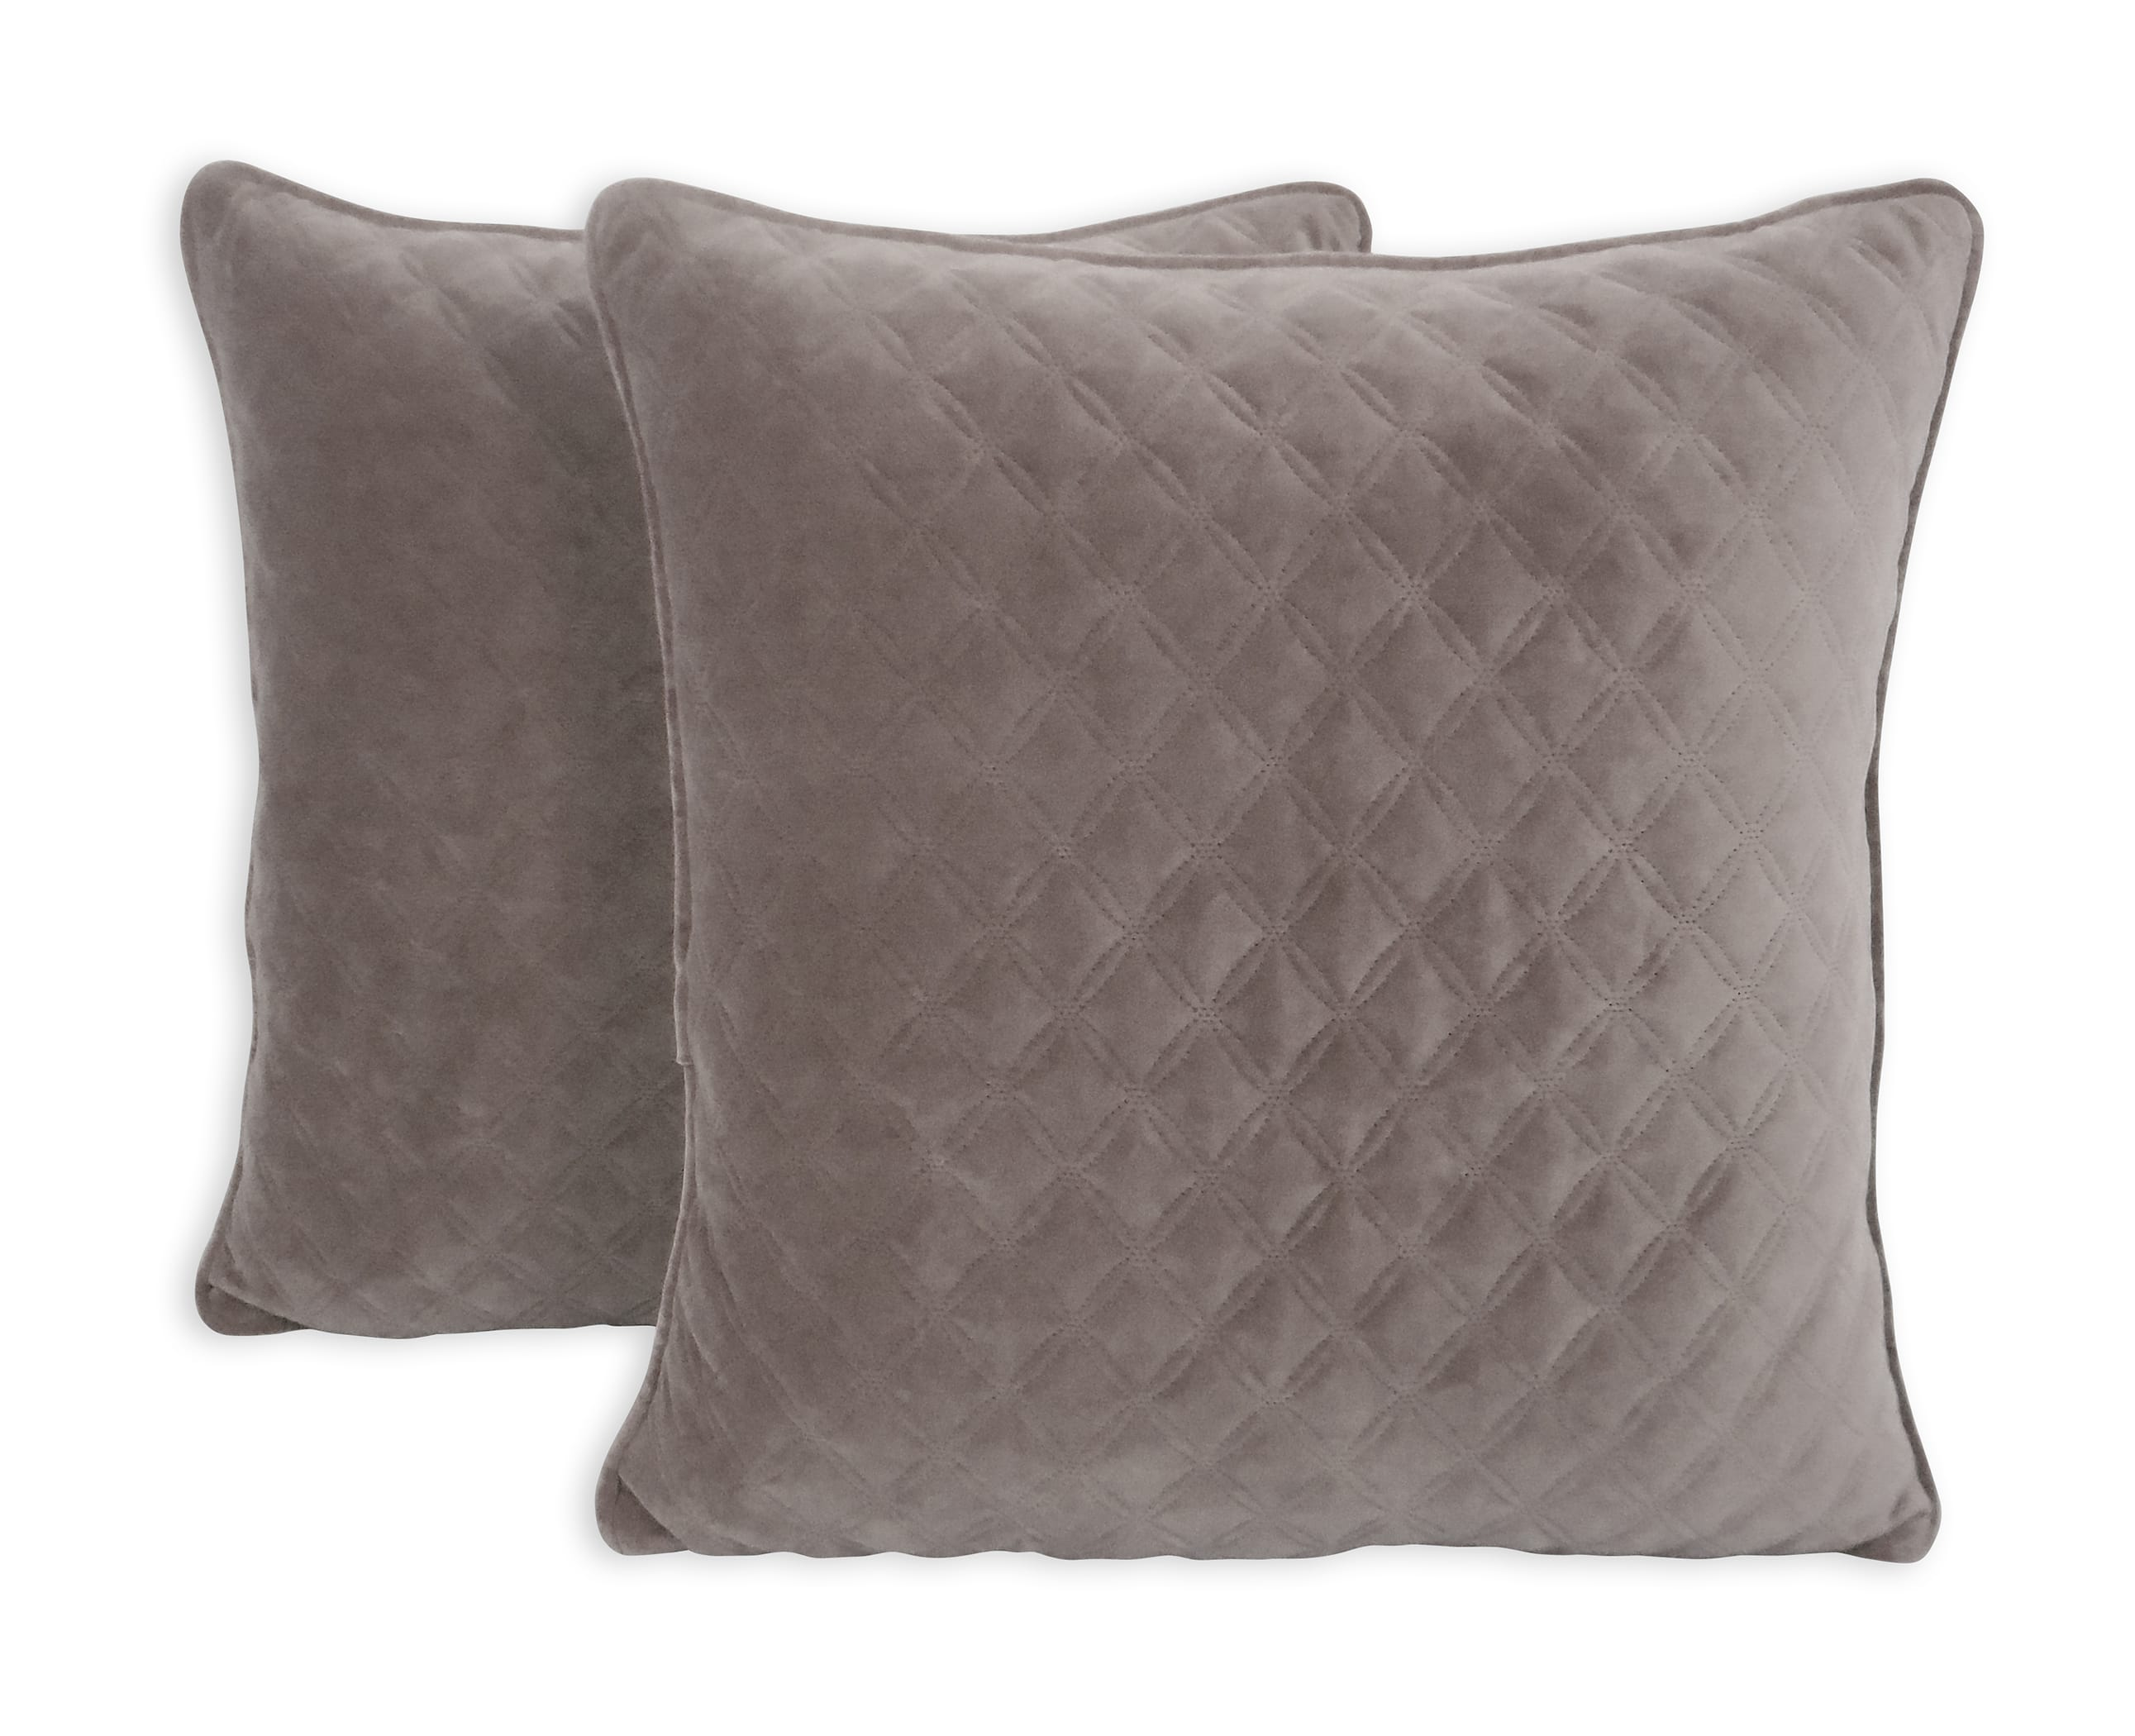 """Better Homes & Gardens Quilted Velvet 19"""" x 19"""" Decorative Throw Pillow, 2 Pack, Select Colors $12 (Reg. $19.88)"""